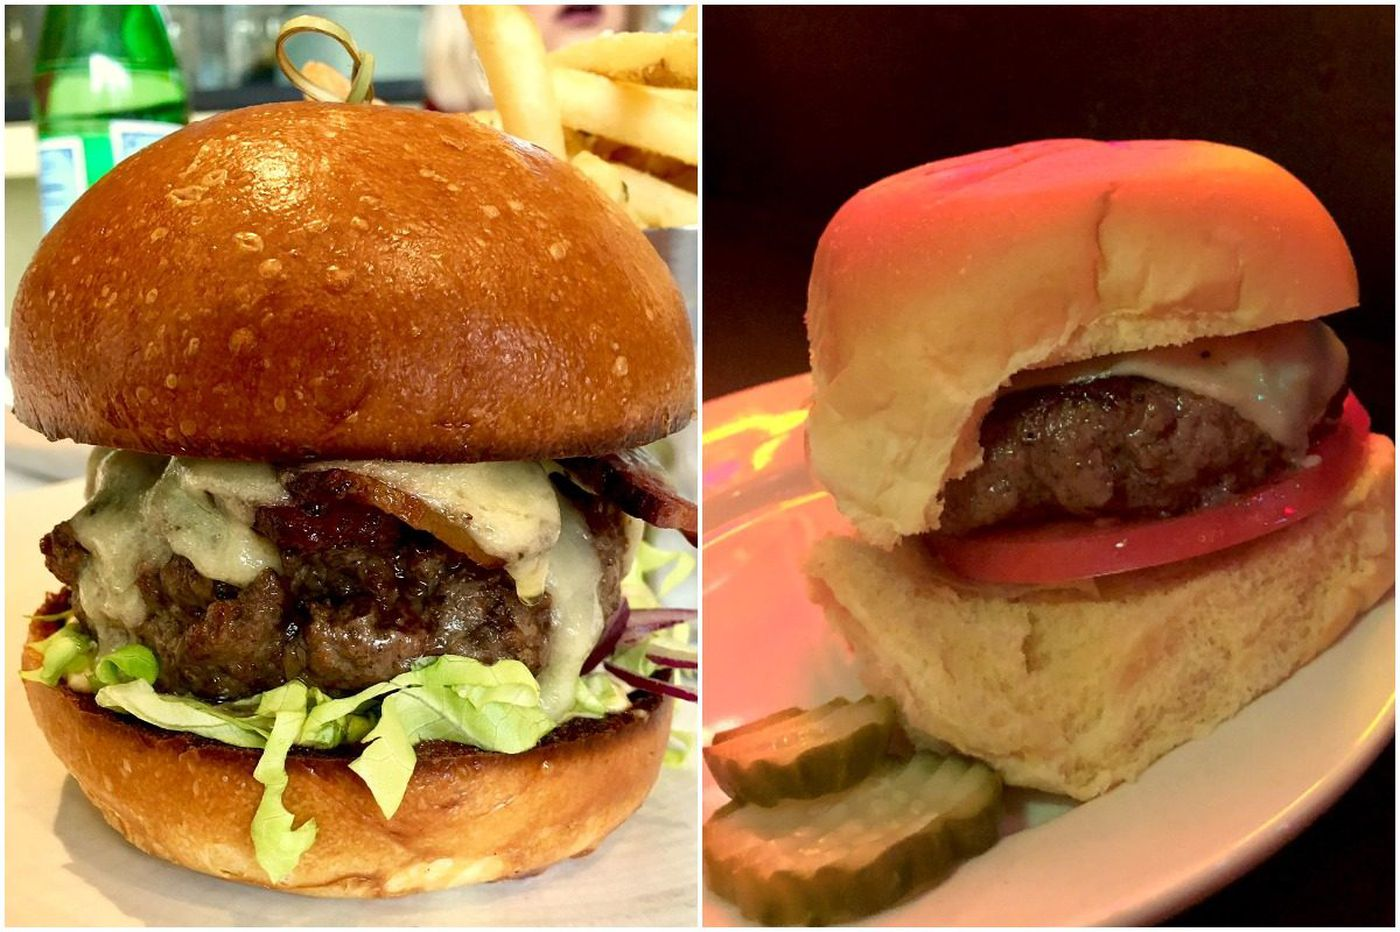 In Philadelphia, a tale of two burgers